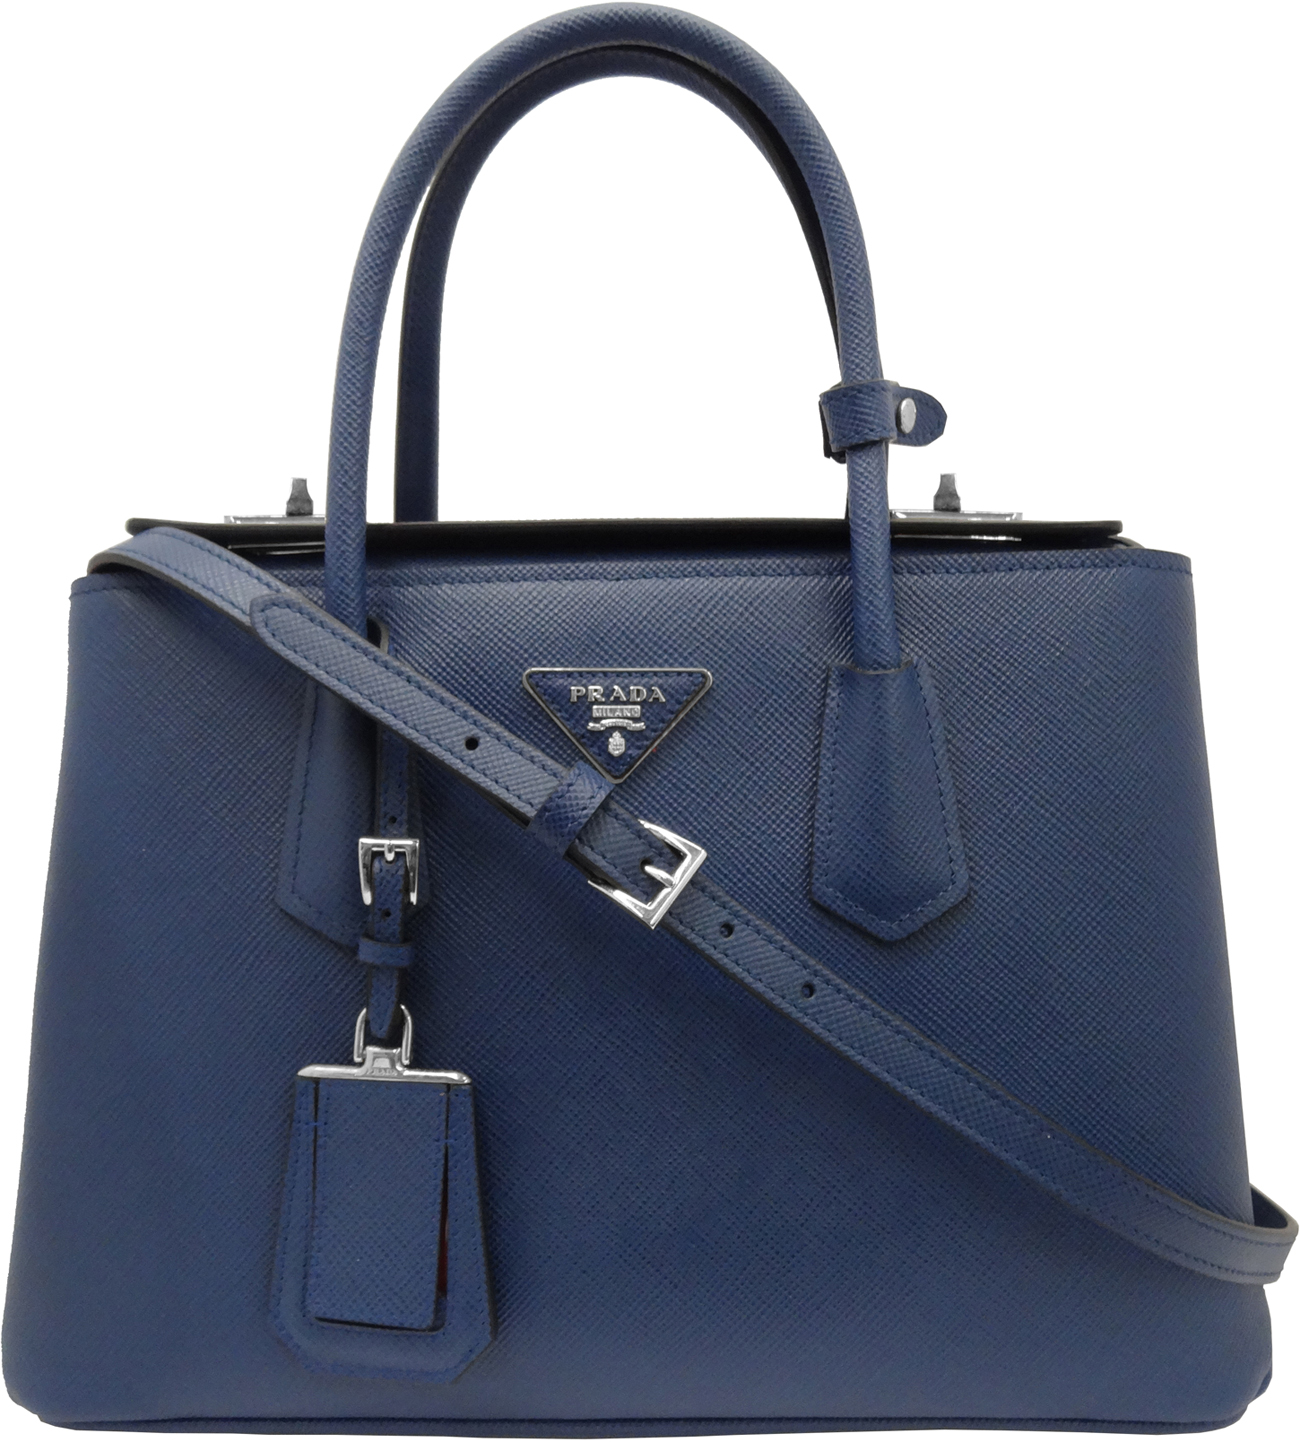 Image of Prada Saffiano Cuir Medium Twin Tote Bag